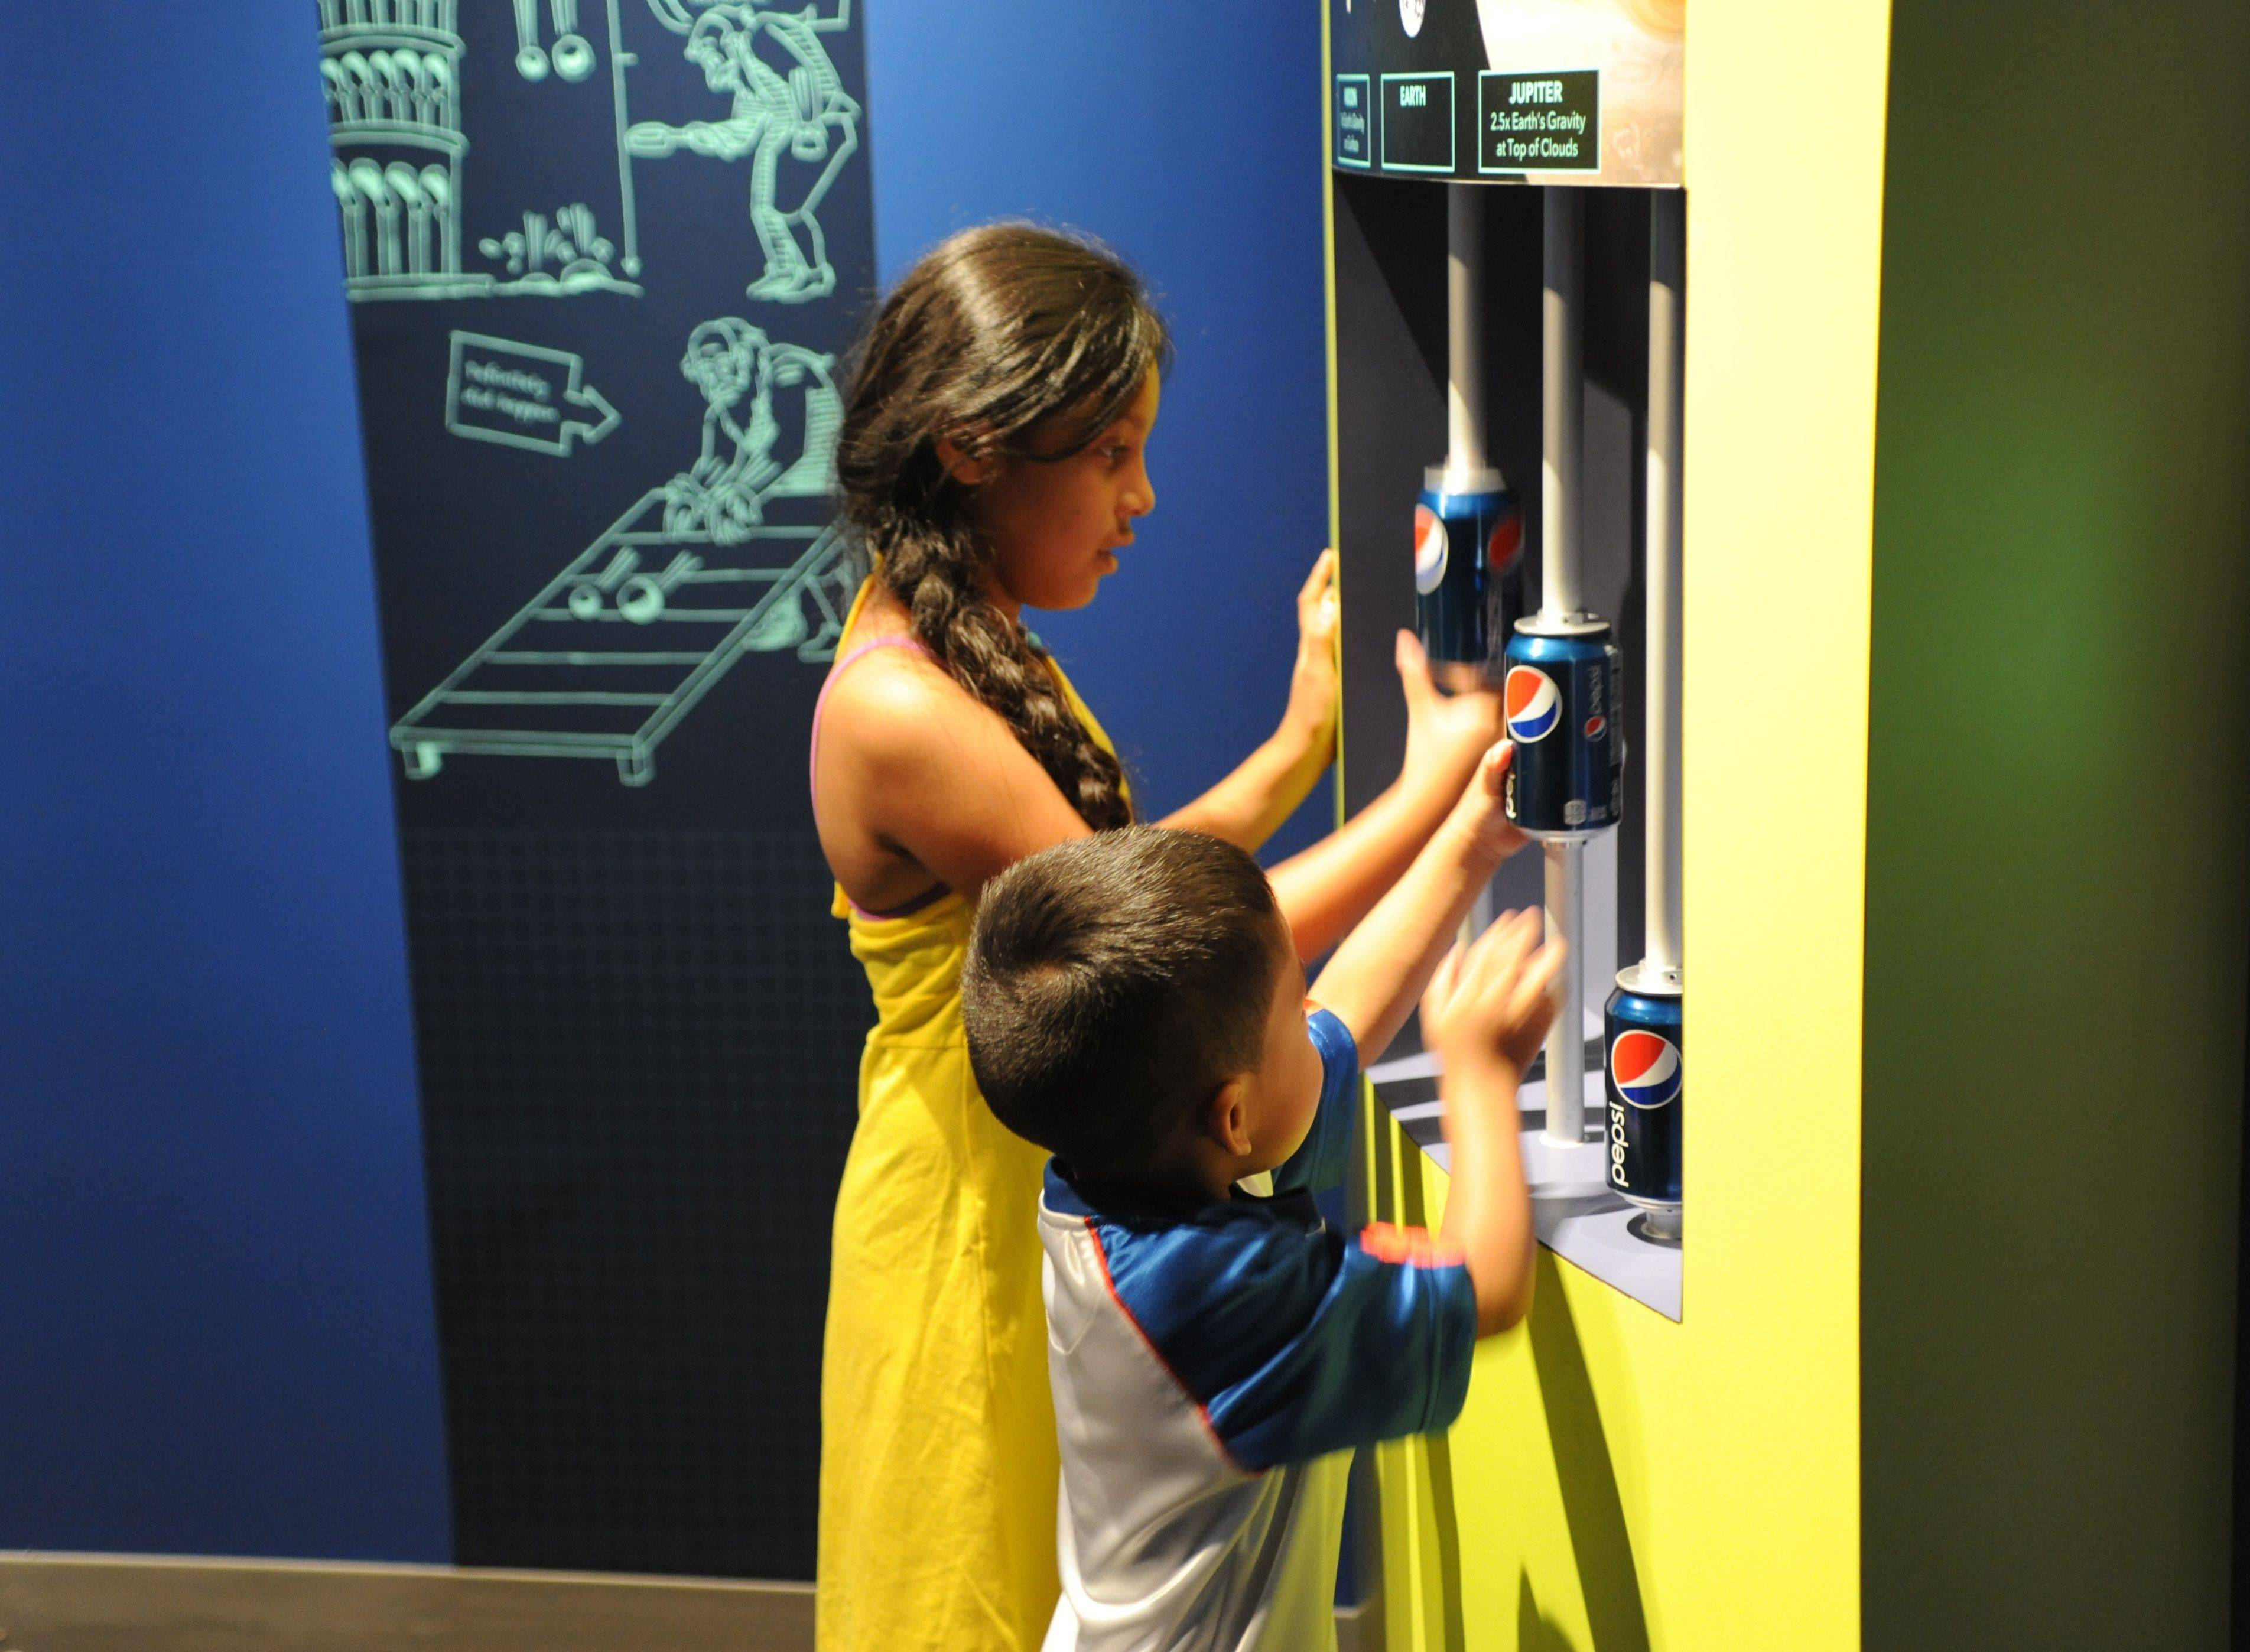 Young visitors experiment with the effects of gravity on the moon, Earth and Jupiter in a hands-on interactive in the Gravity exhibition at the Adler Planetarium in Chicago.